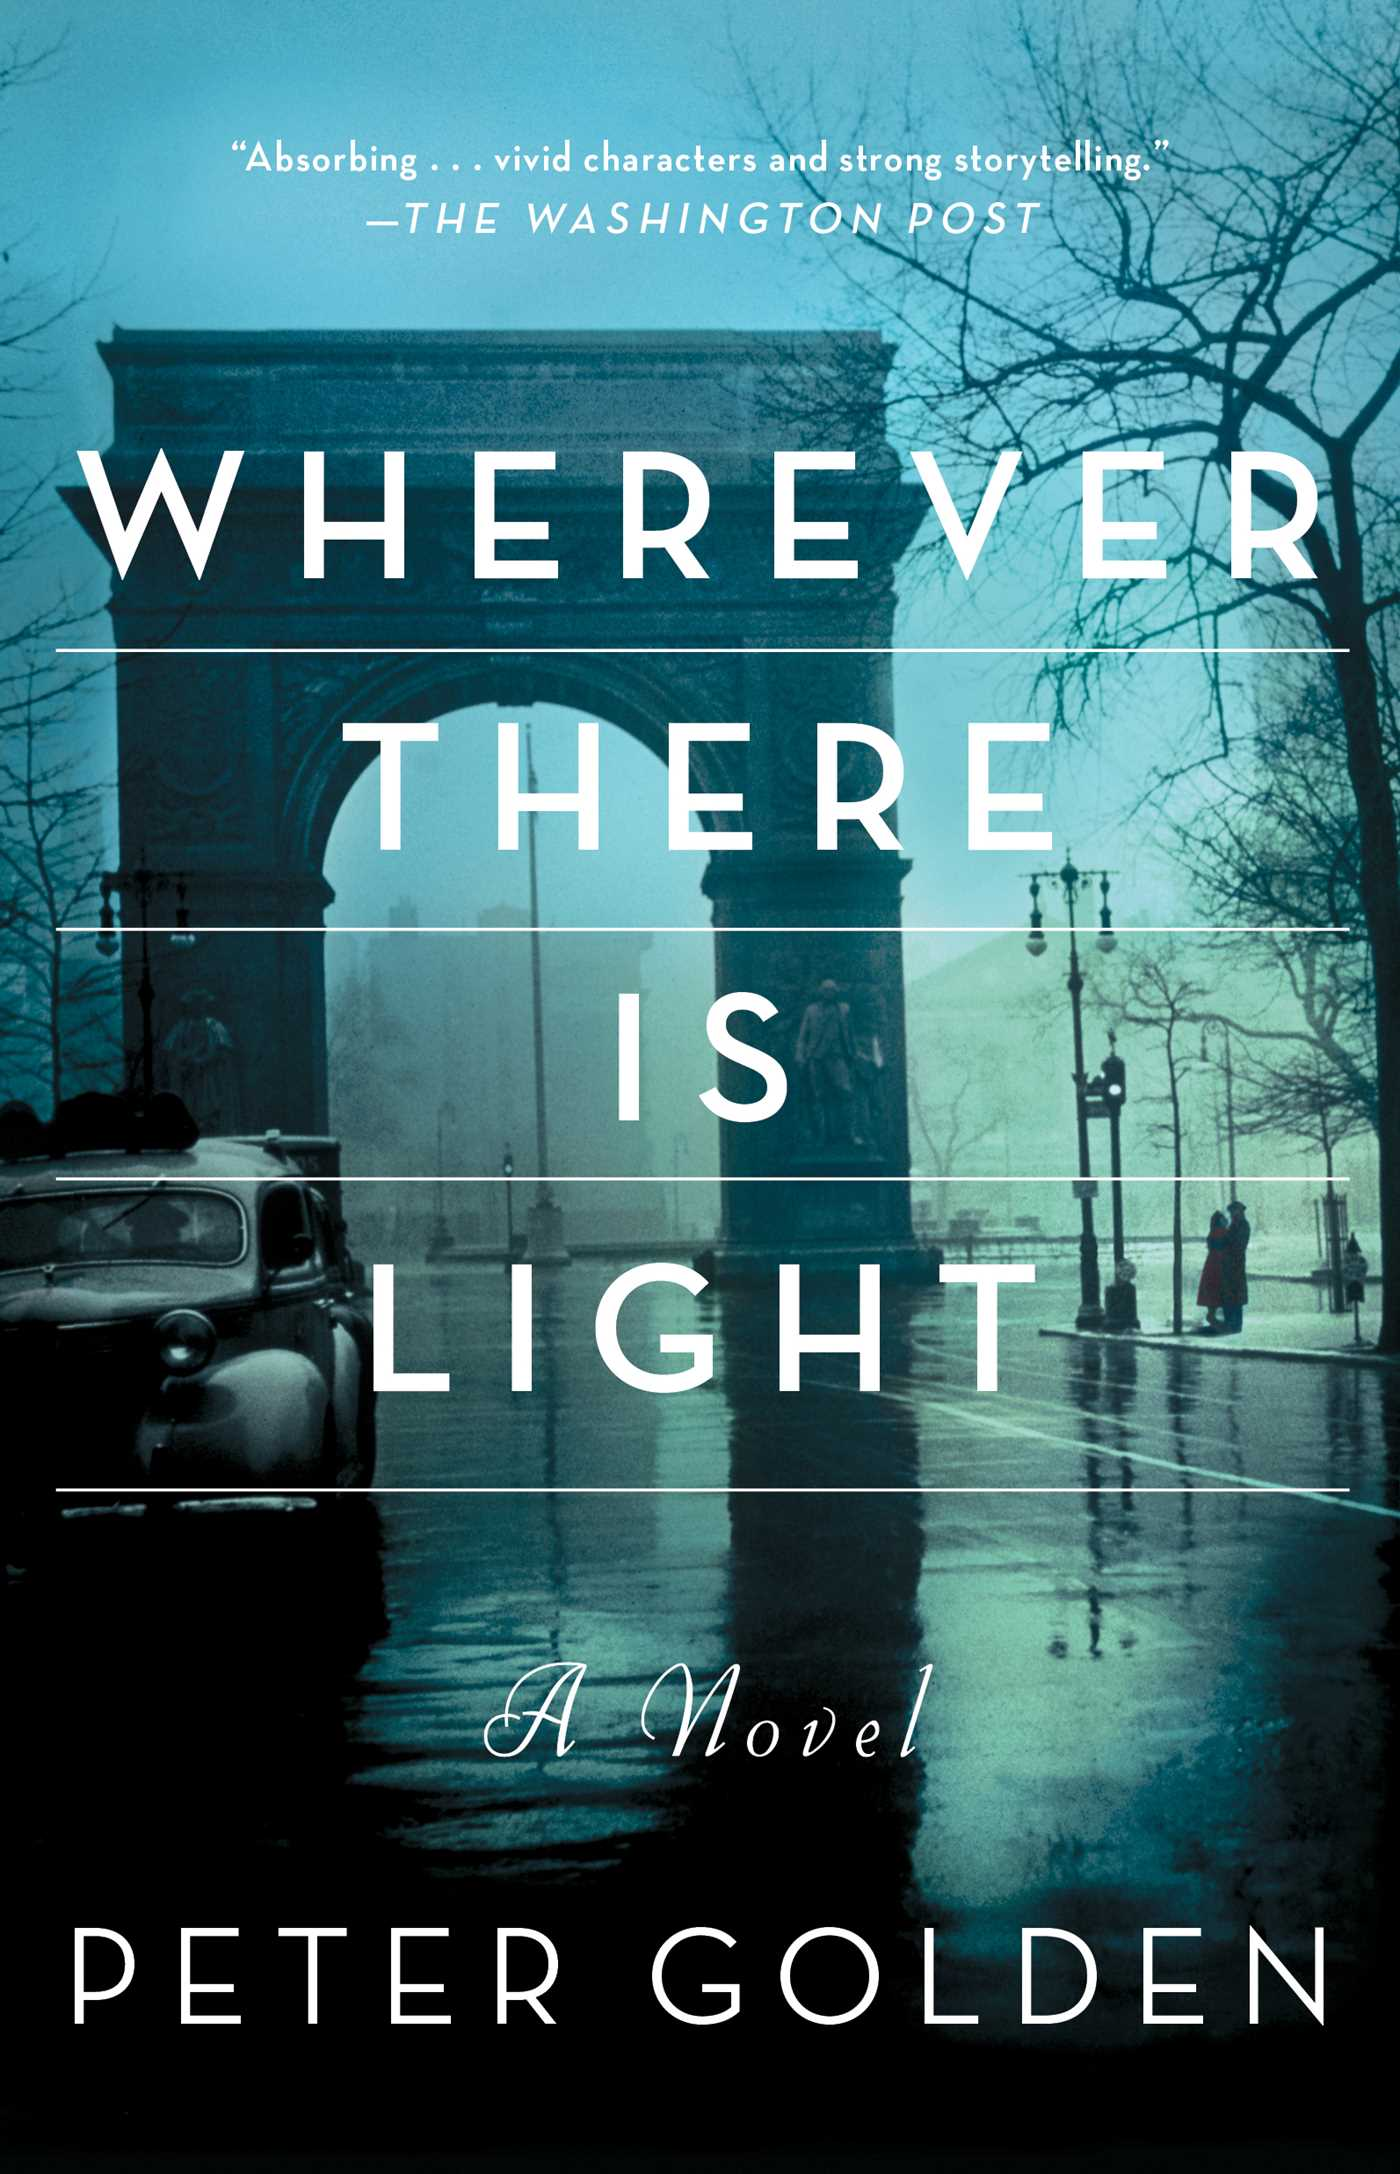 Wherever there is light 9781476705613 hr